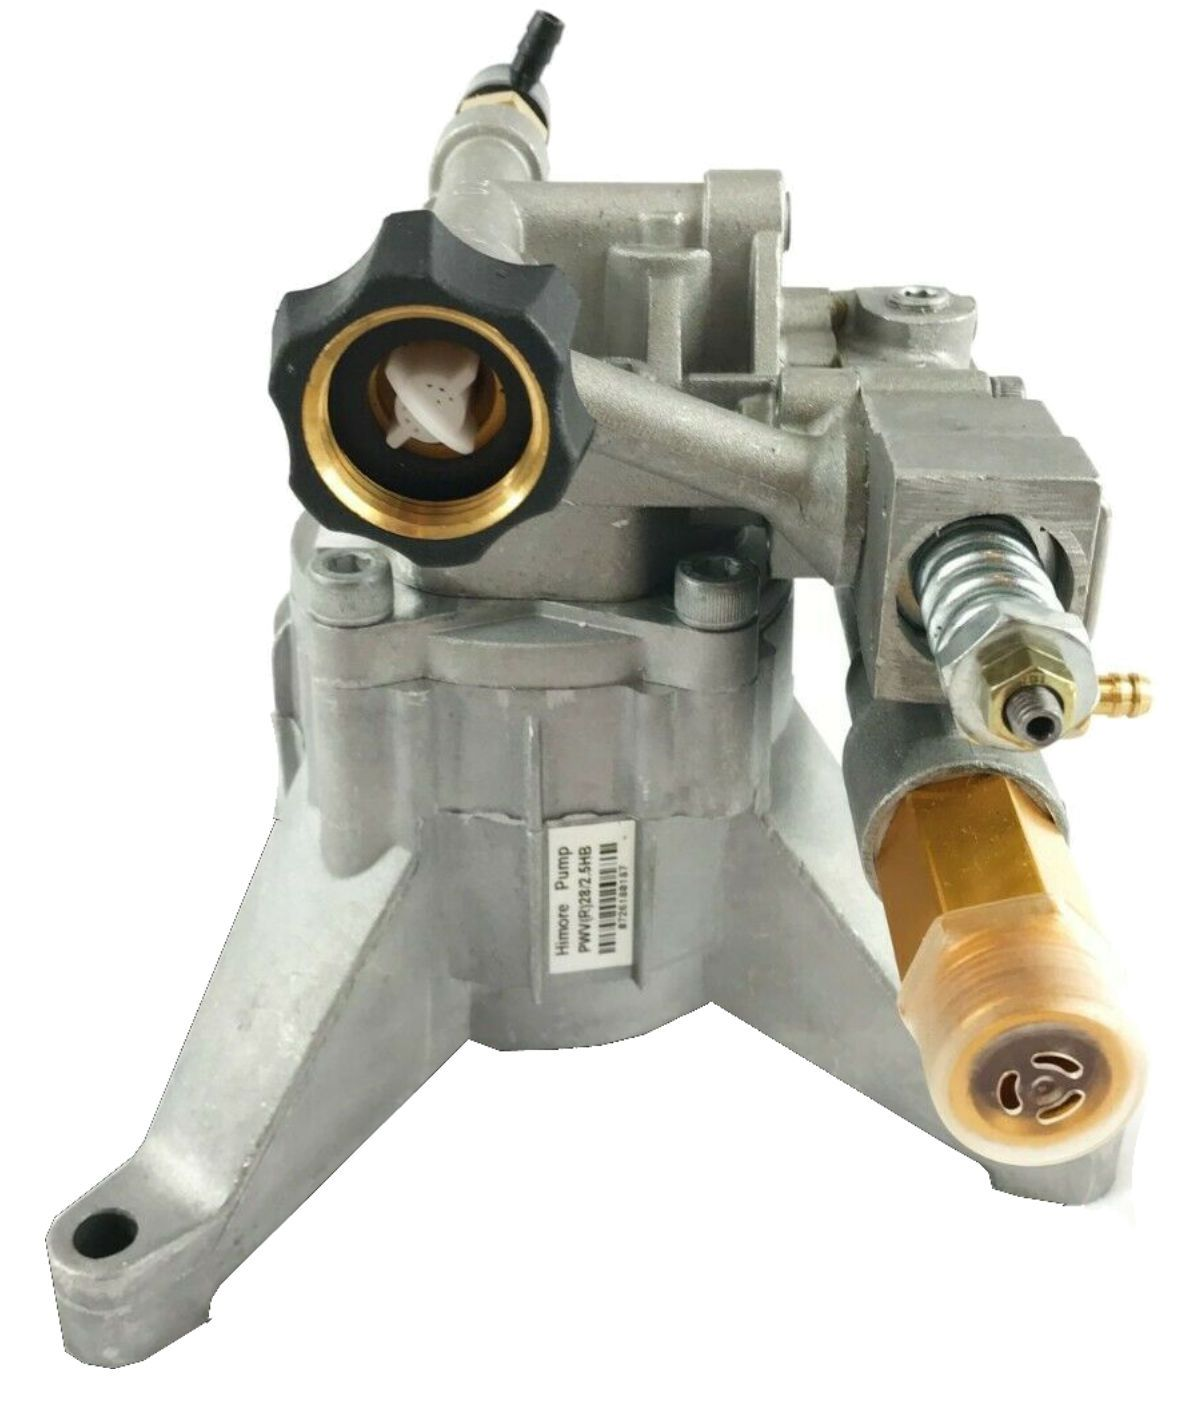 2700 PSI PRESSURE WASHER WATER PUMP fits Sears Craftsman 580.752000 1898-0 - AE-Power